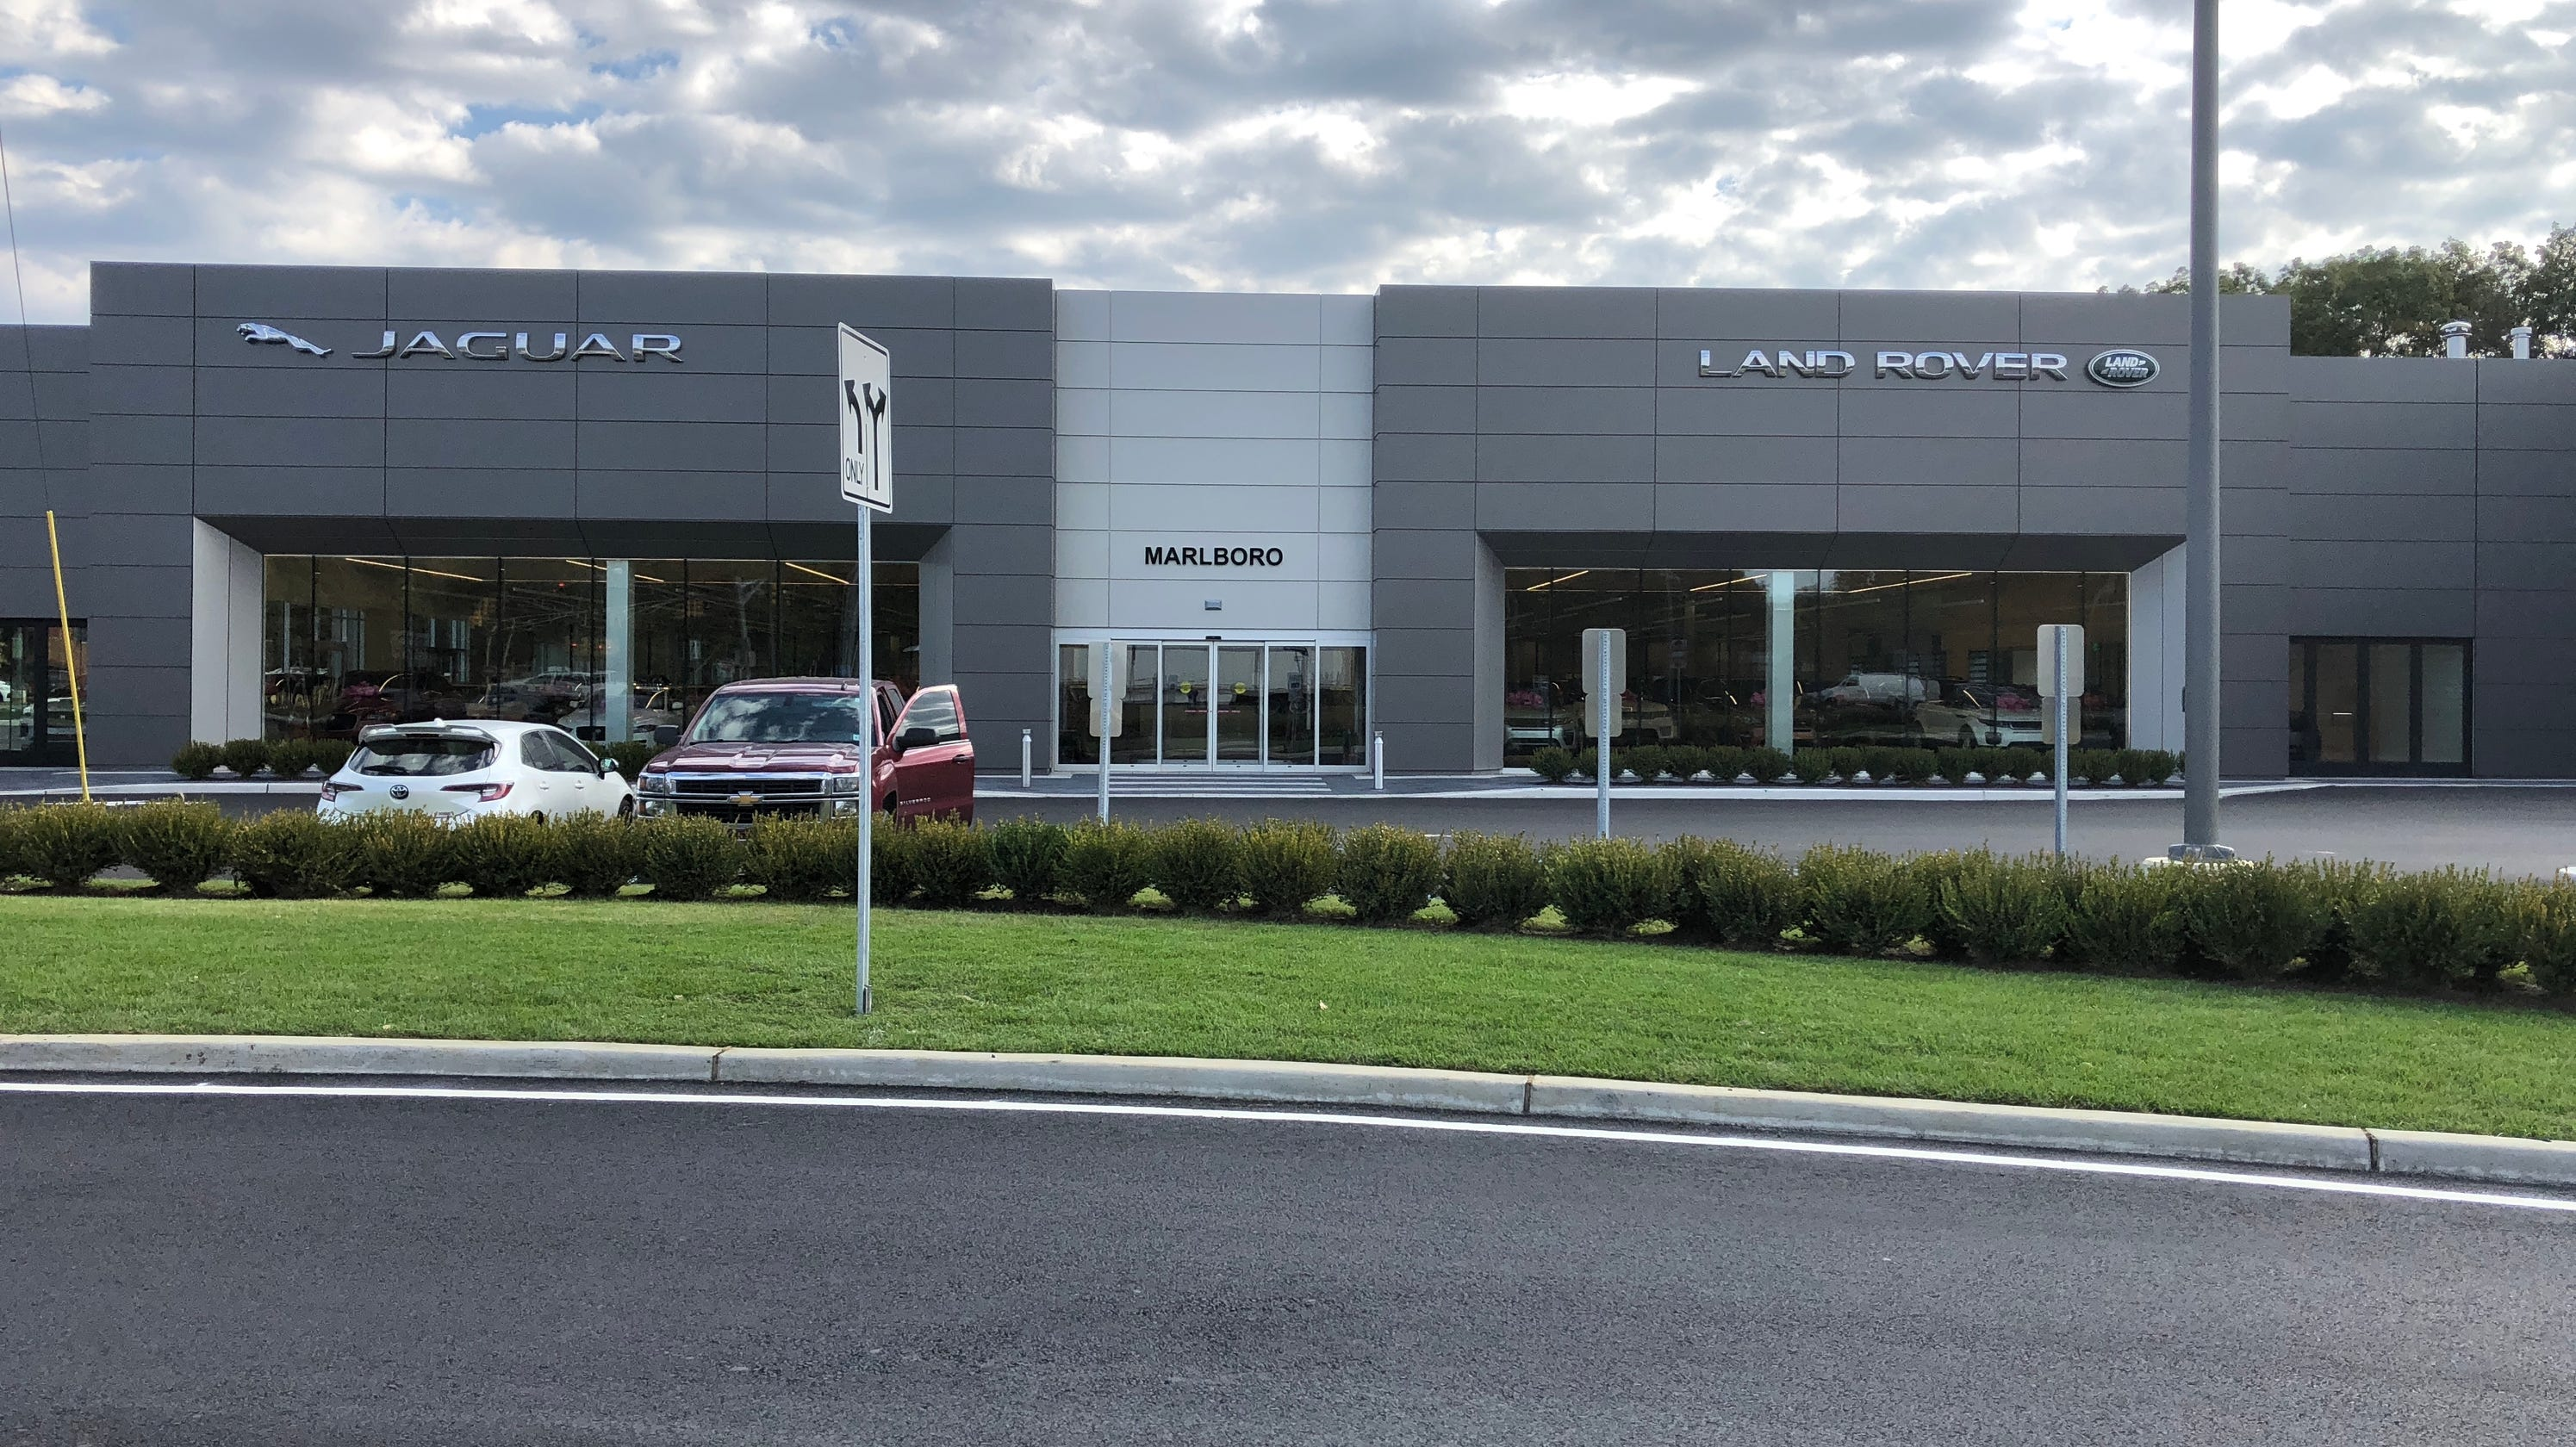 Ray Catena Jaguar >> Ray Catena Opens Gleaming Jaguar Land Rover Dealership In Marlboro